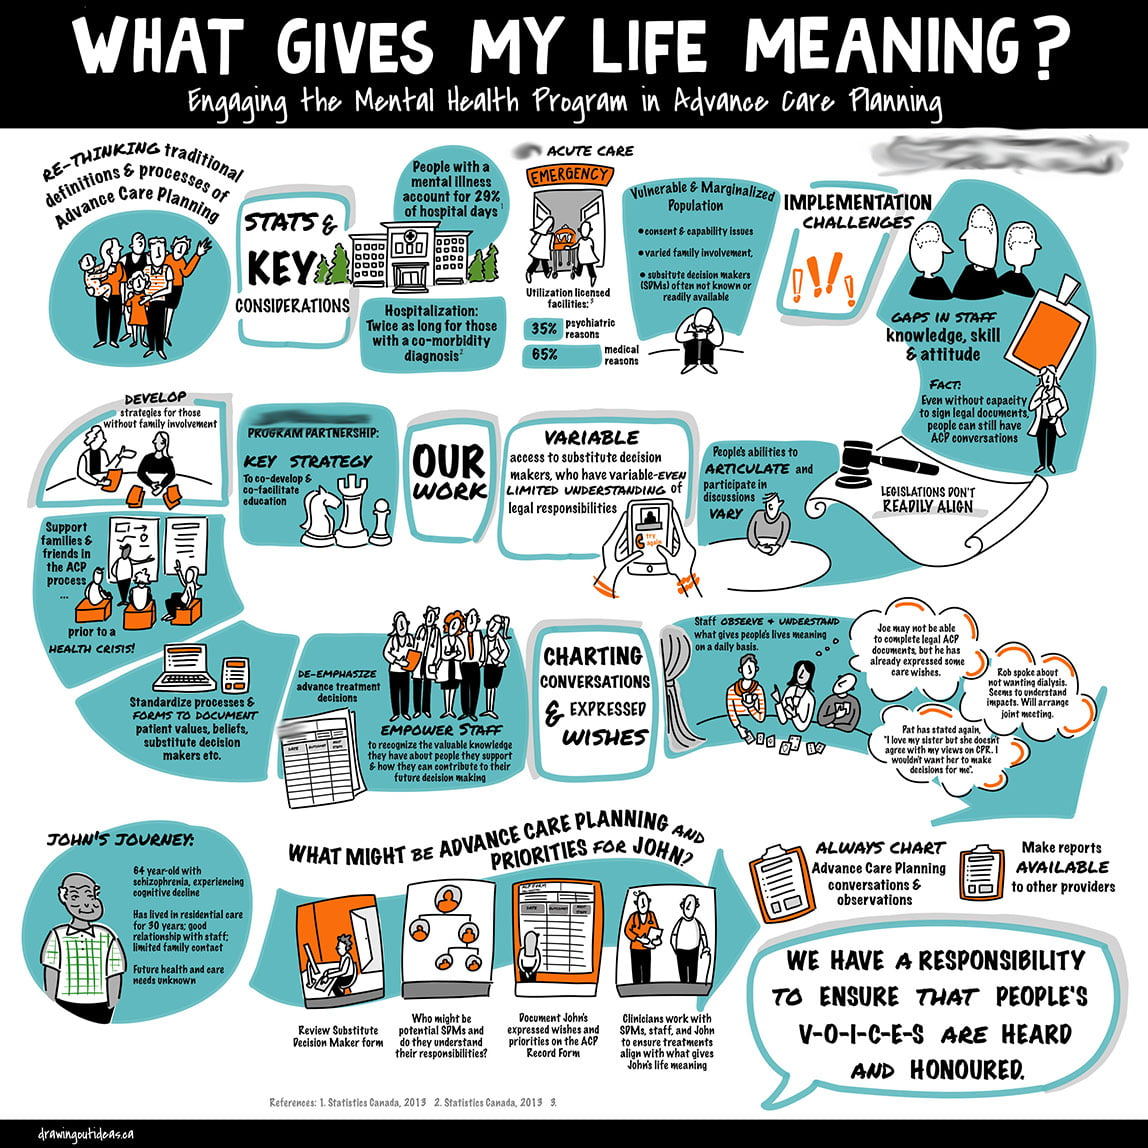 mental health program journey, infographic, illustrated journey, patient journey, system mapping, infographics vancouver bc, infographics victoria bc, the fuselight creative